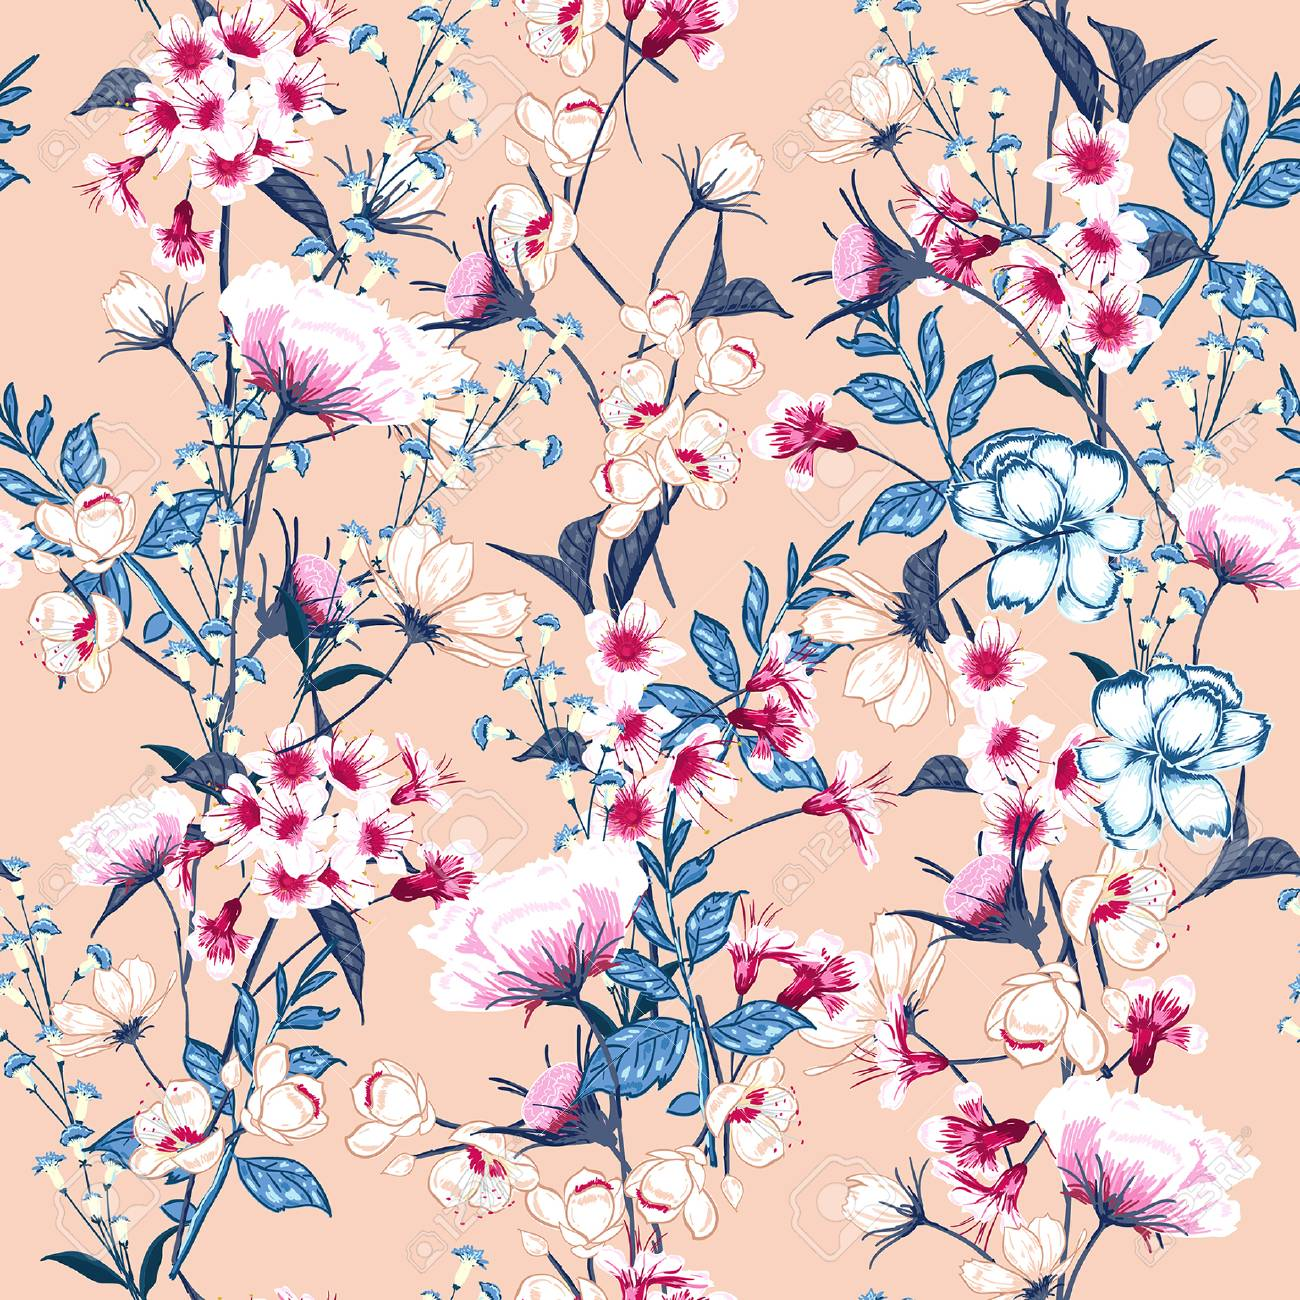 Trendy Floral pattern in the many kind of flowers. Botanical Motifs scattered random. Seamless vector texture. Elegant template for fashion prints. Printing with in hand drawn style on pink background. - 91348073